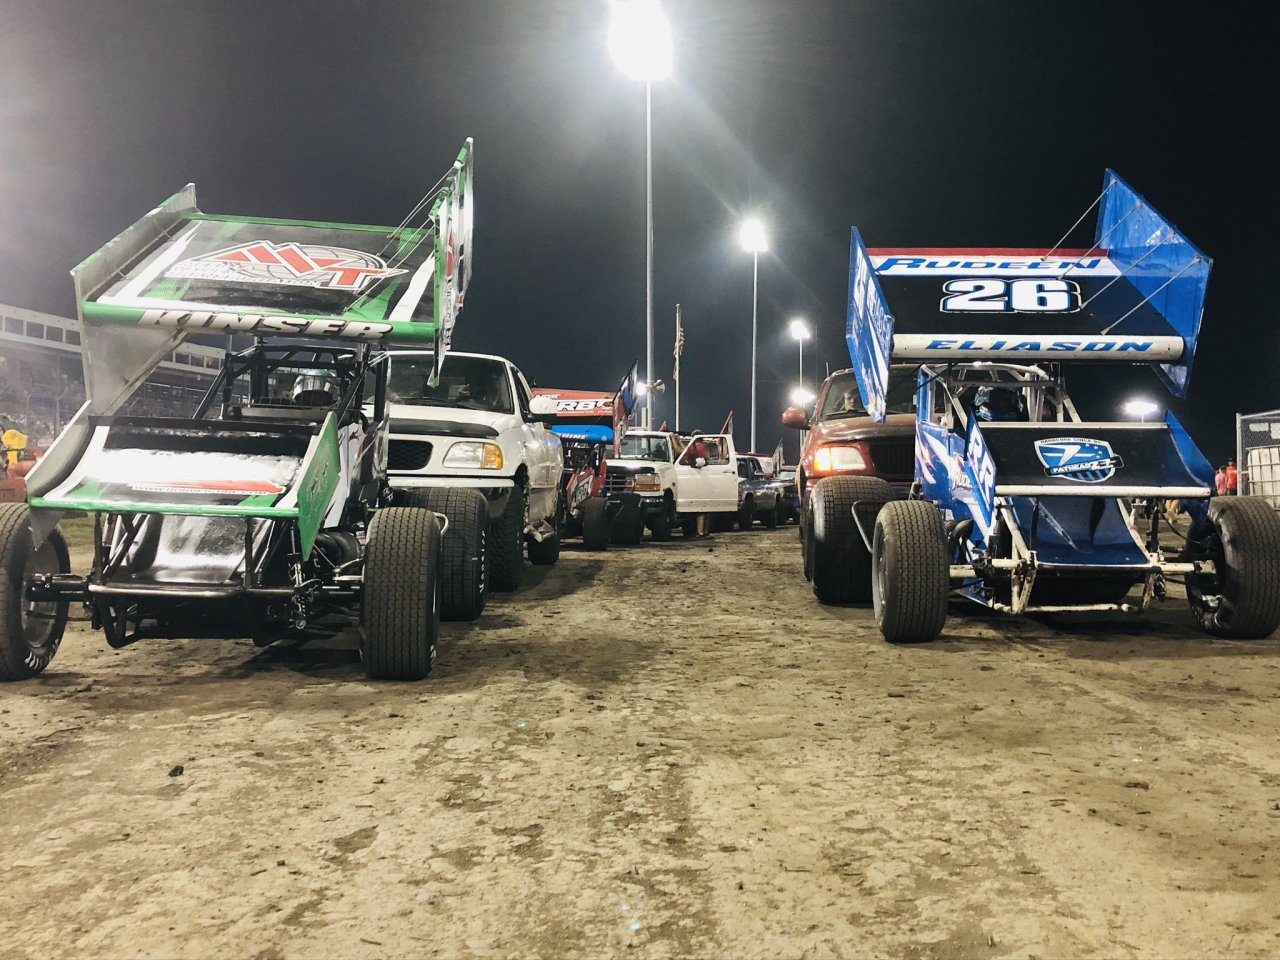 One and Only - Knoxville Raceway - World of Outlaws Sprint Car Series